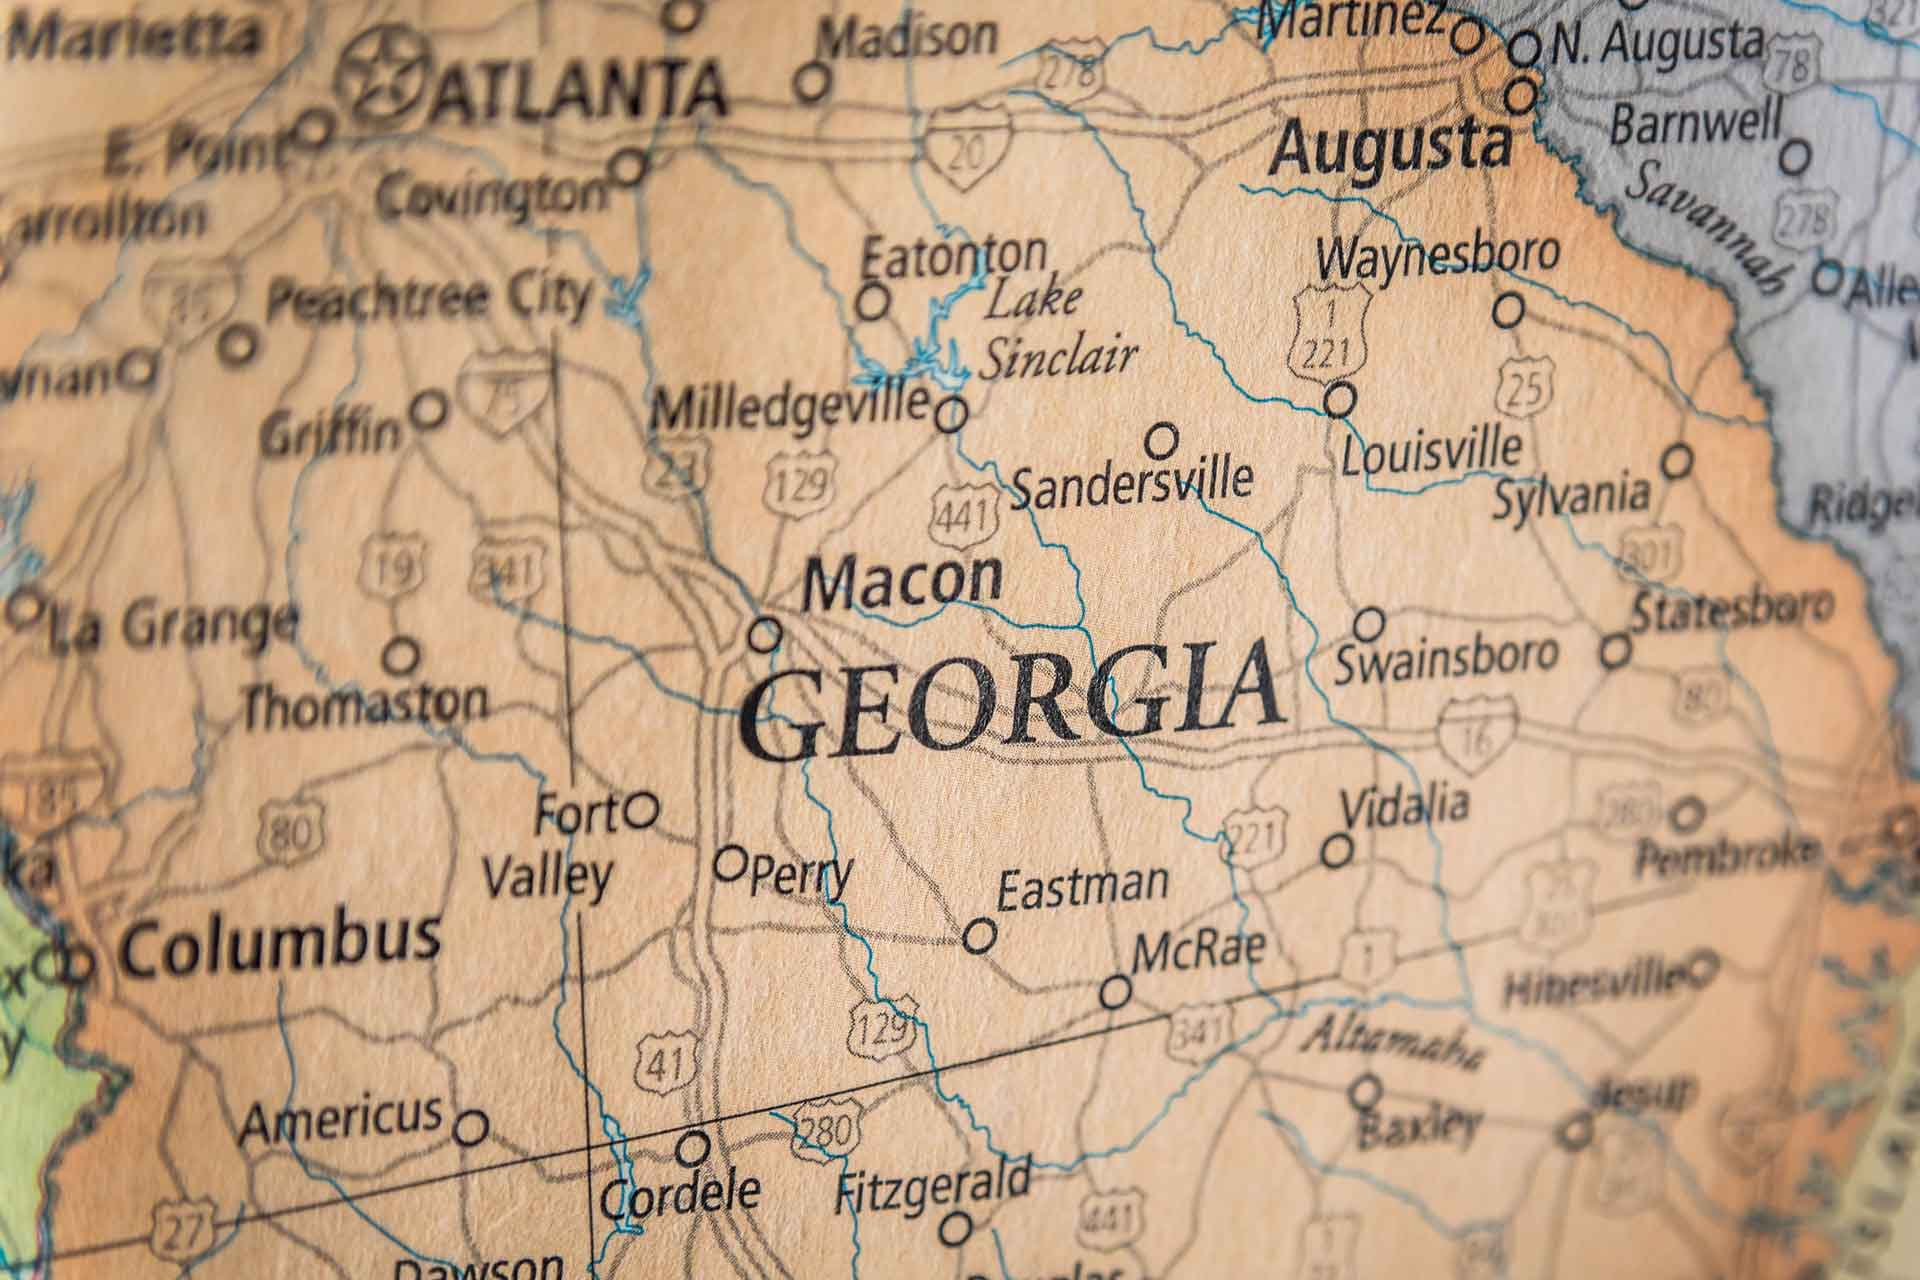 Old Historical City, County and State Maps of Georgia on georgia coat of arms usa, georgia people usa, georgia south america, georgia flag usa, georgia interesting places usa, georgia cartoon, north carolina, georgia state bird usa, ghost towns in georgia usa, south georgia usa, south carolina, home usa, georgia travel usa, georgia climate usa, georgia state america, georgia food usa, georgia history usa, new jersey, georgia city usa, new york, georgia borders,